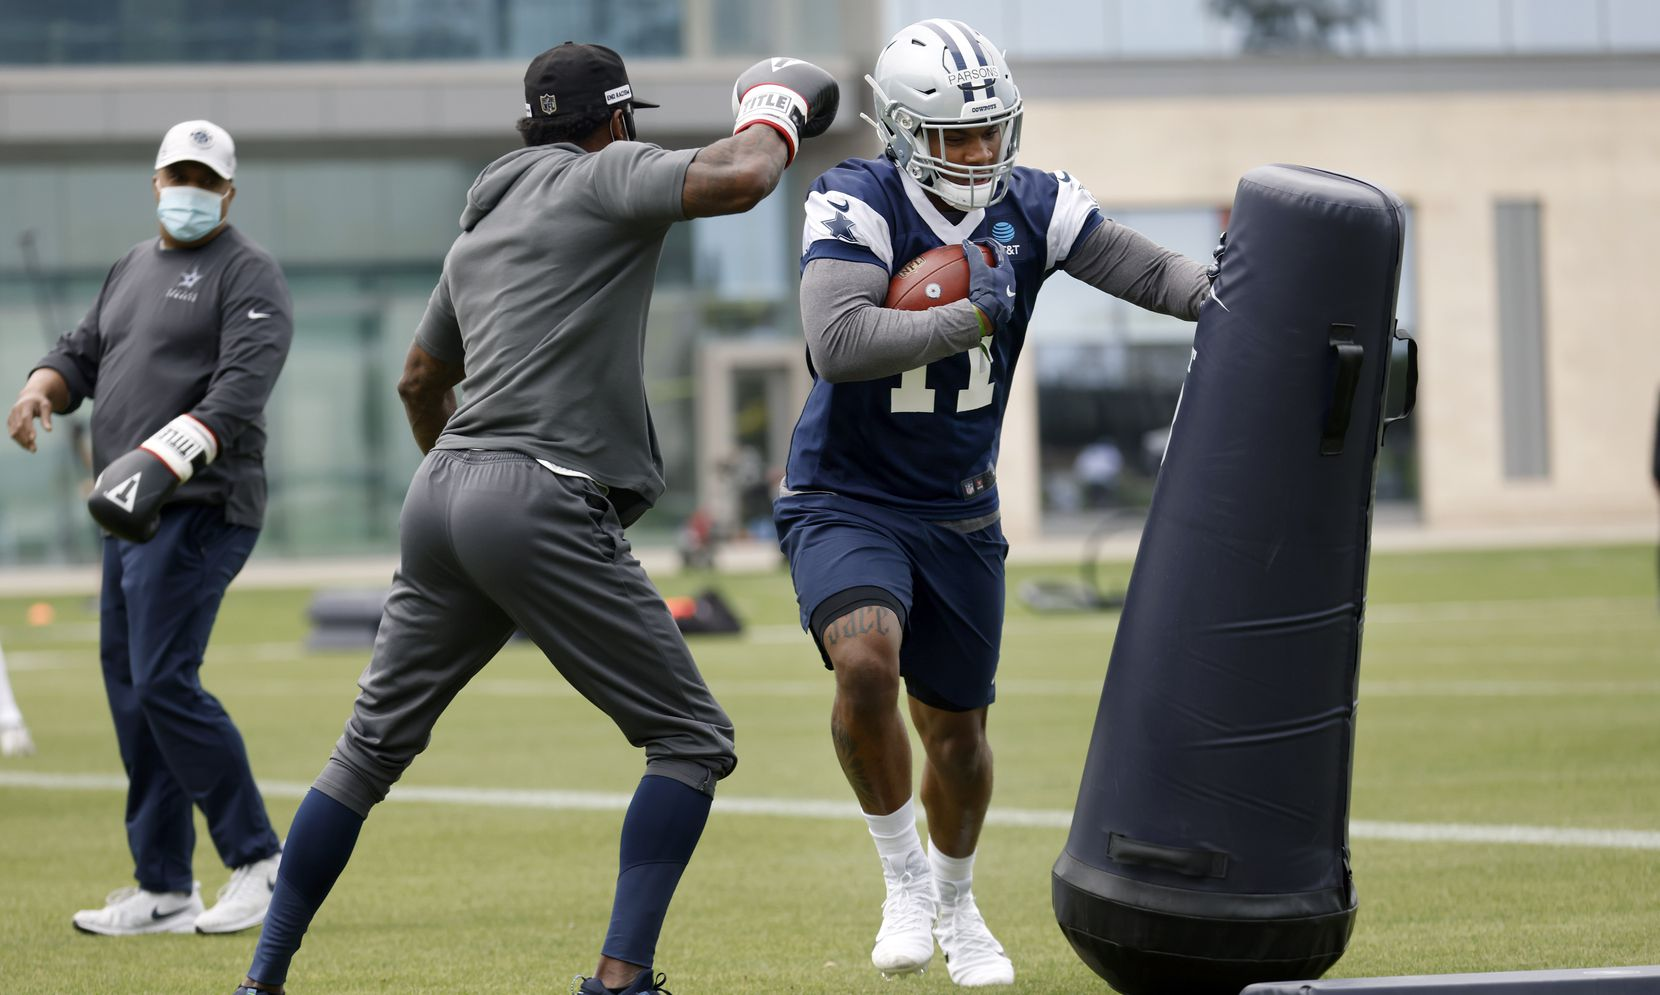 Dallas Cowboys rookie linebacker Micah Parsons (11) runs through drills during rookie minicamp at the The Star in Frisco, Texas, Friday, May 14, 2021. (Tom Fox/The Dallas Morning News)